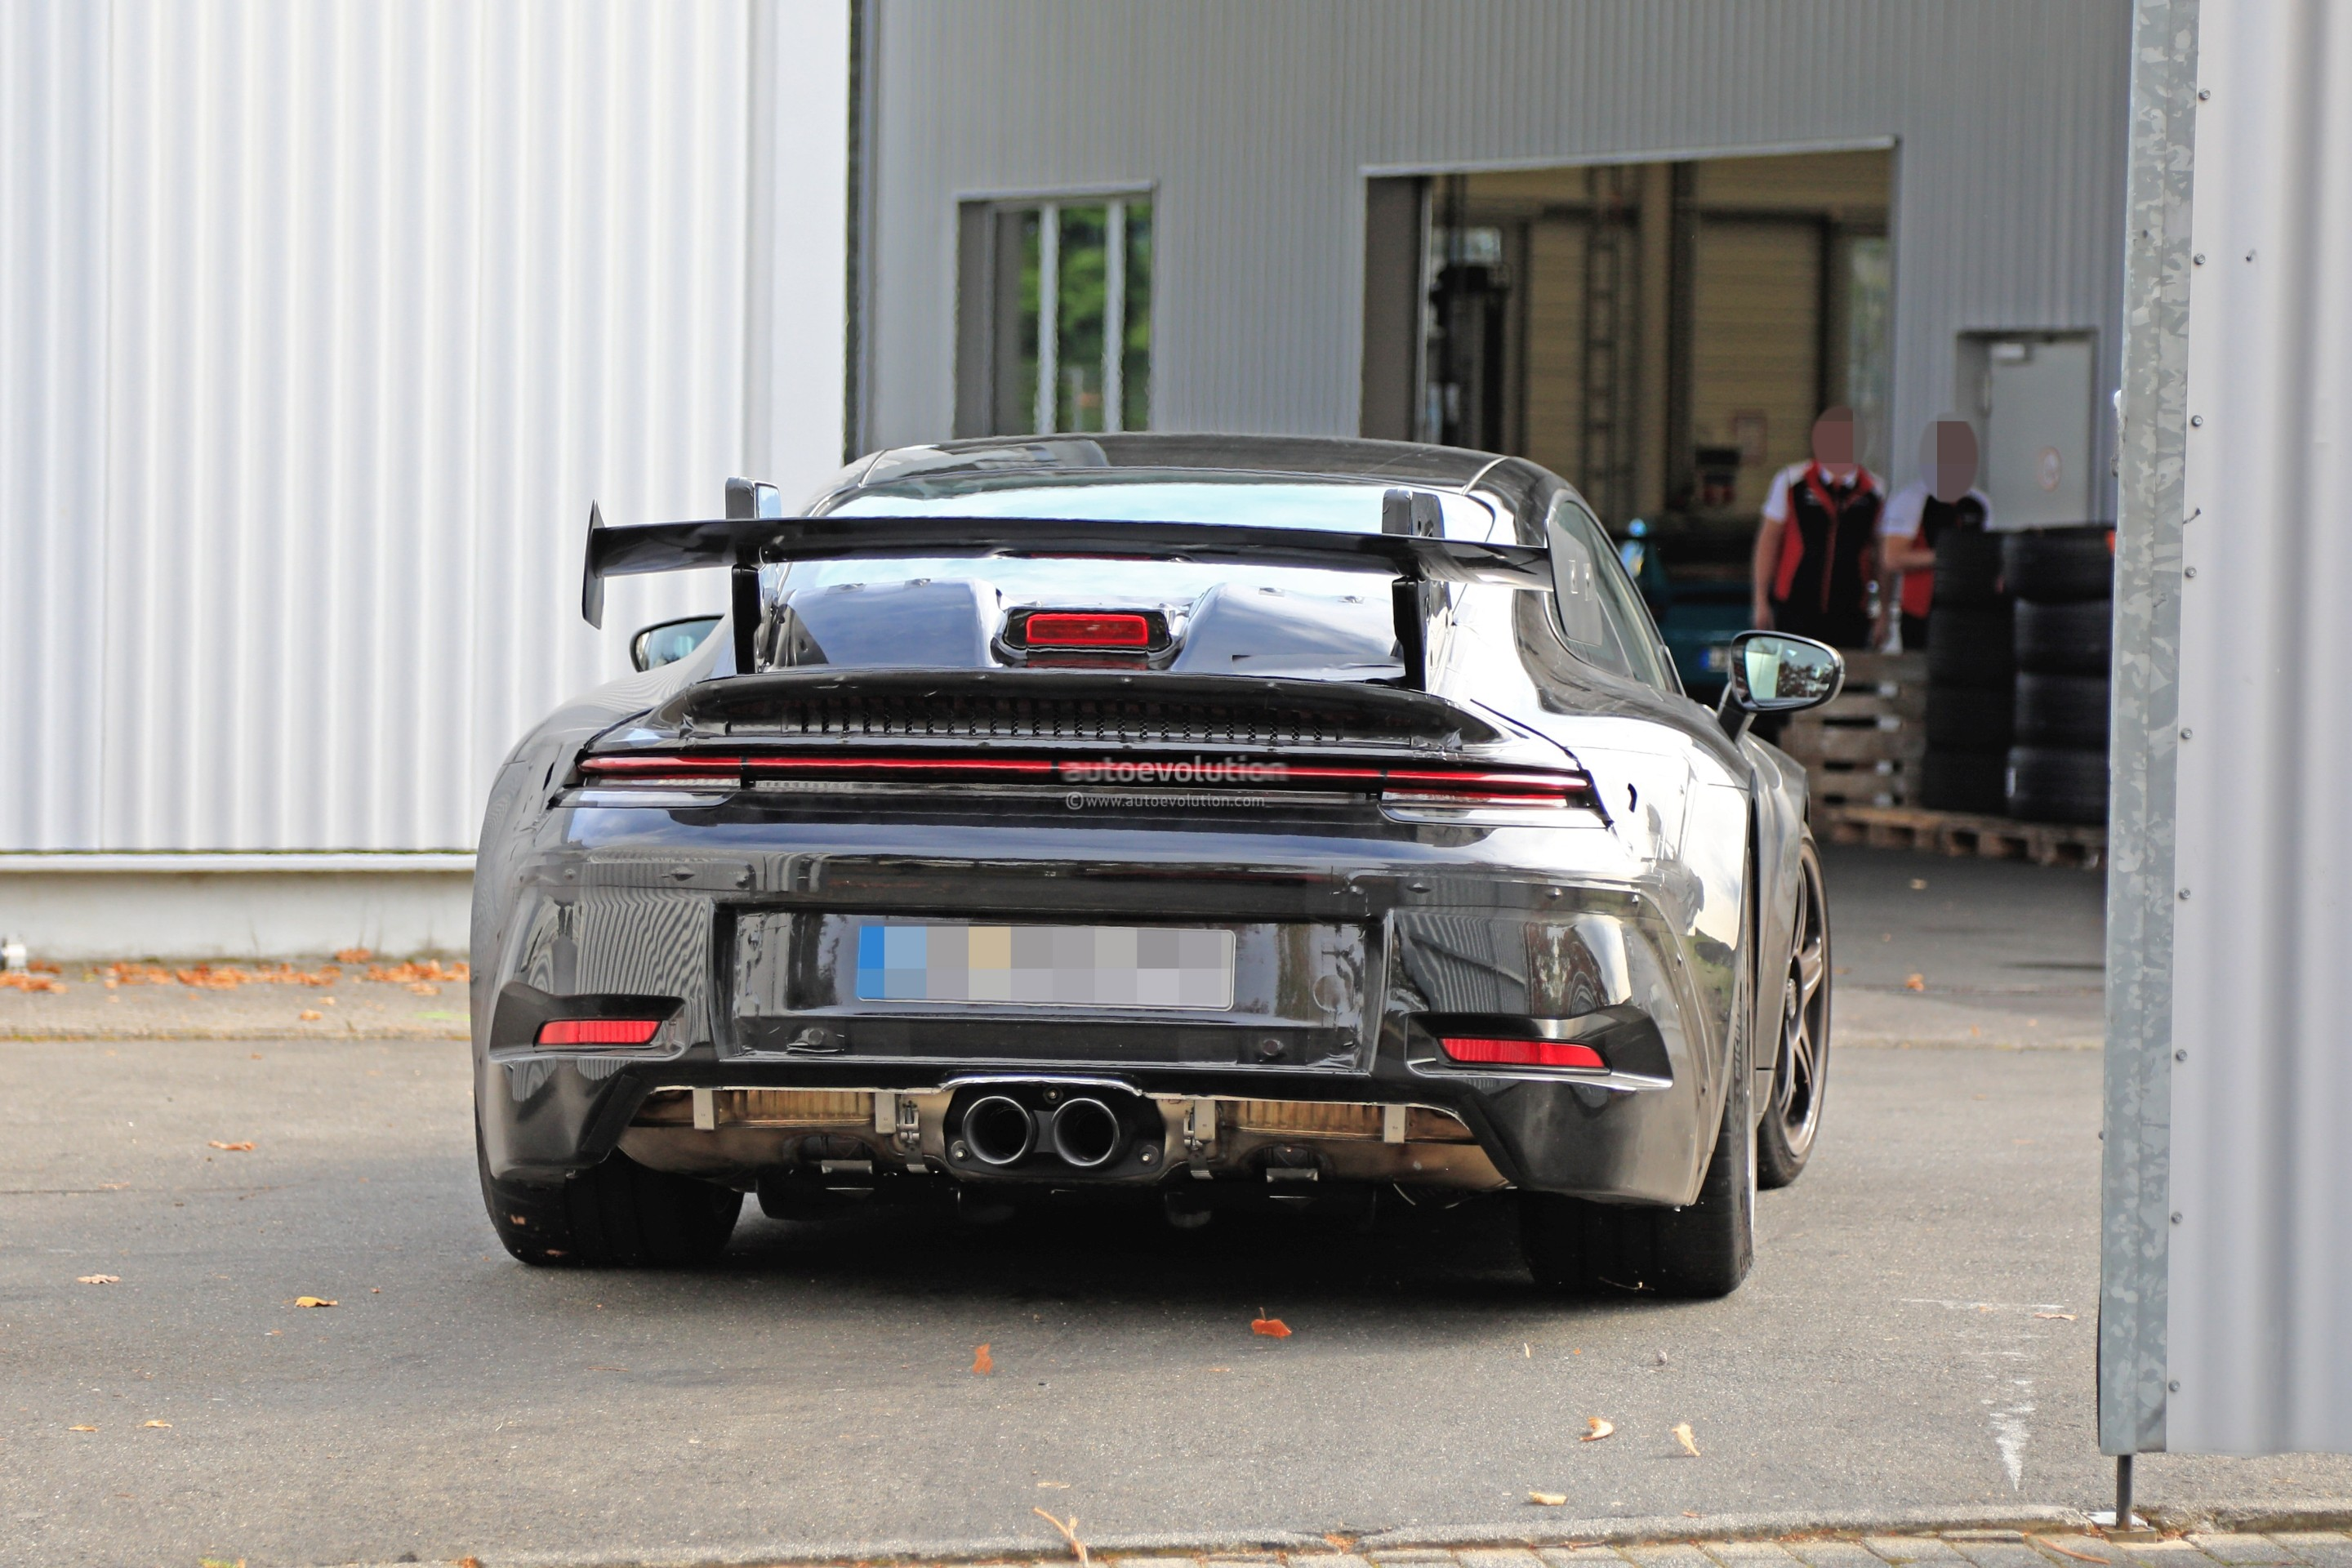 new-2020-p​orsche-911​-gt3-proto​type-shows​-productio​n-design_2